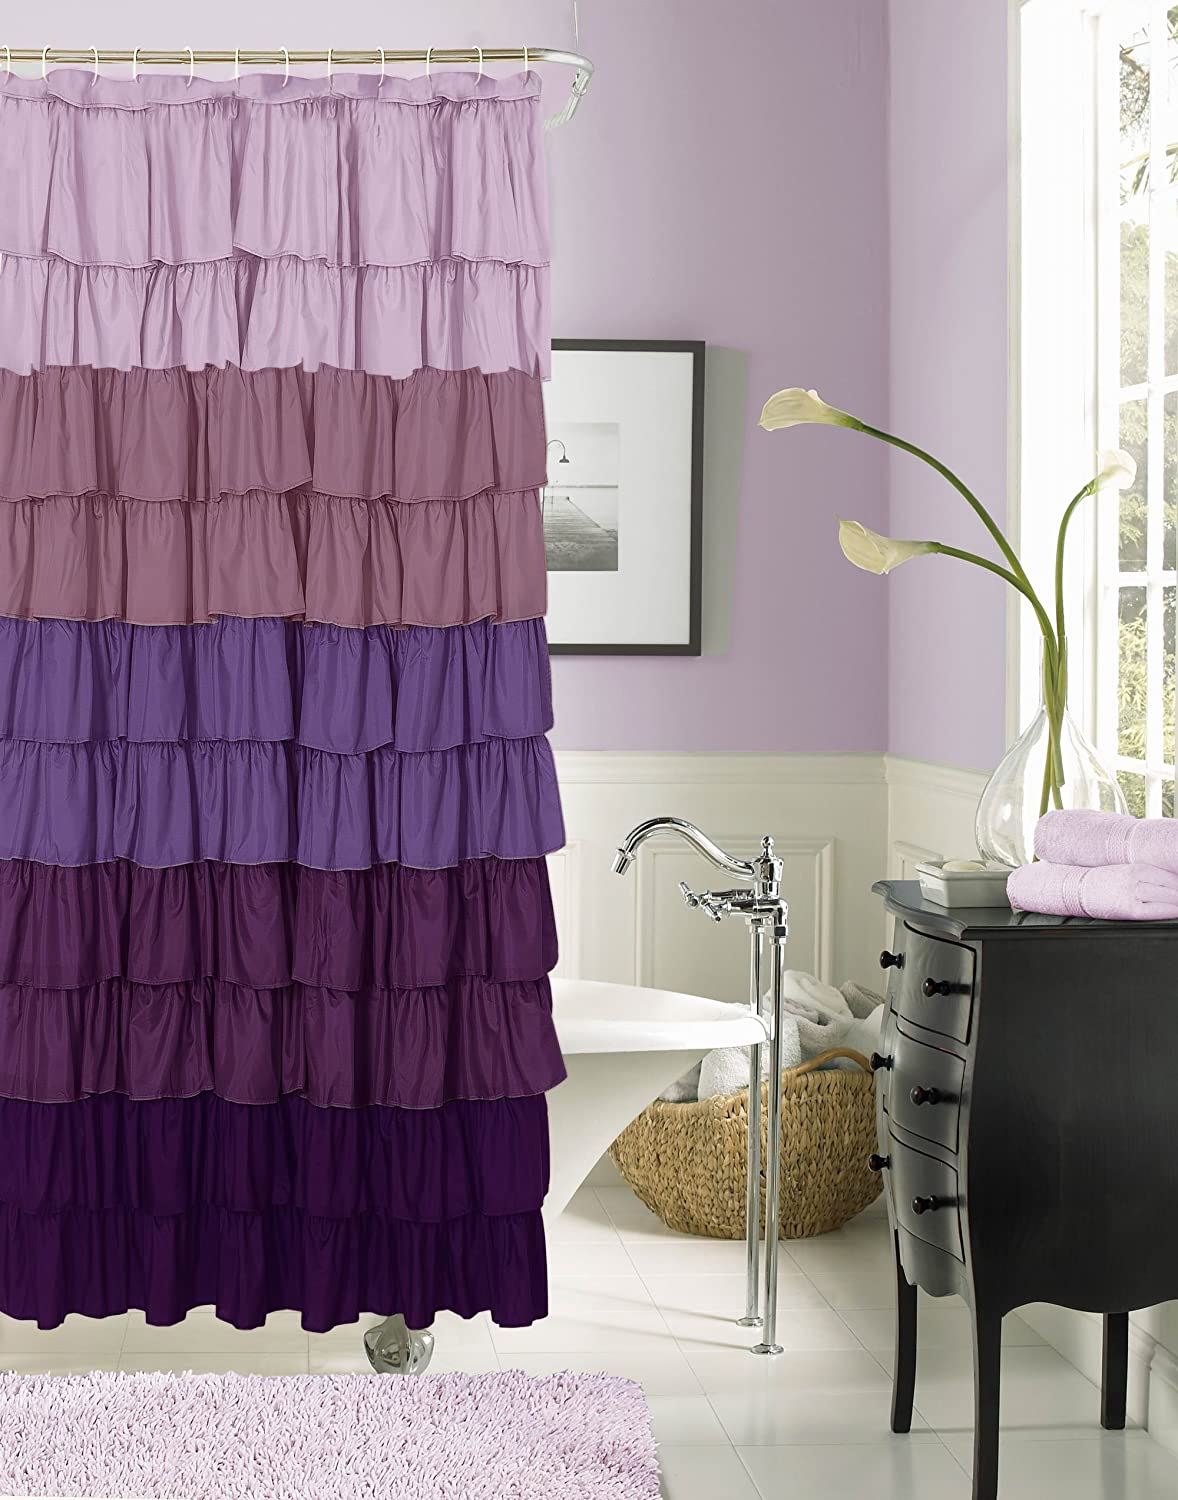 Purple shower curtain liner - Amazon Com Dainty Home Flamenco Ruffled Shower Curtain 72 By 72 Inch Purple Home Kitchen